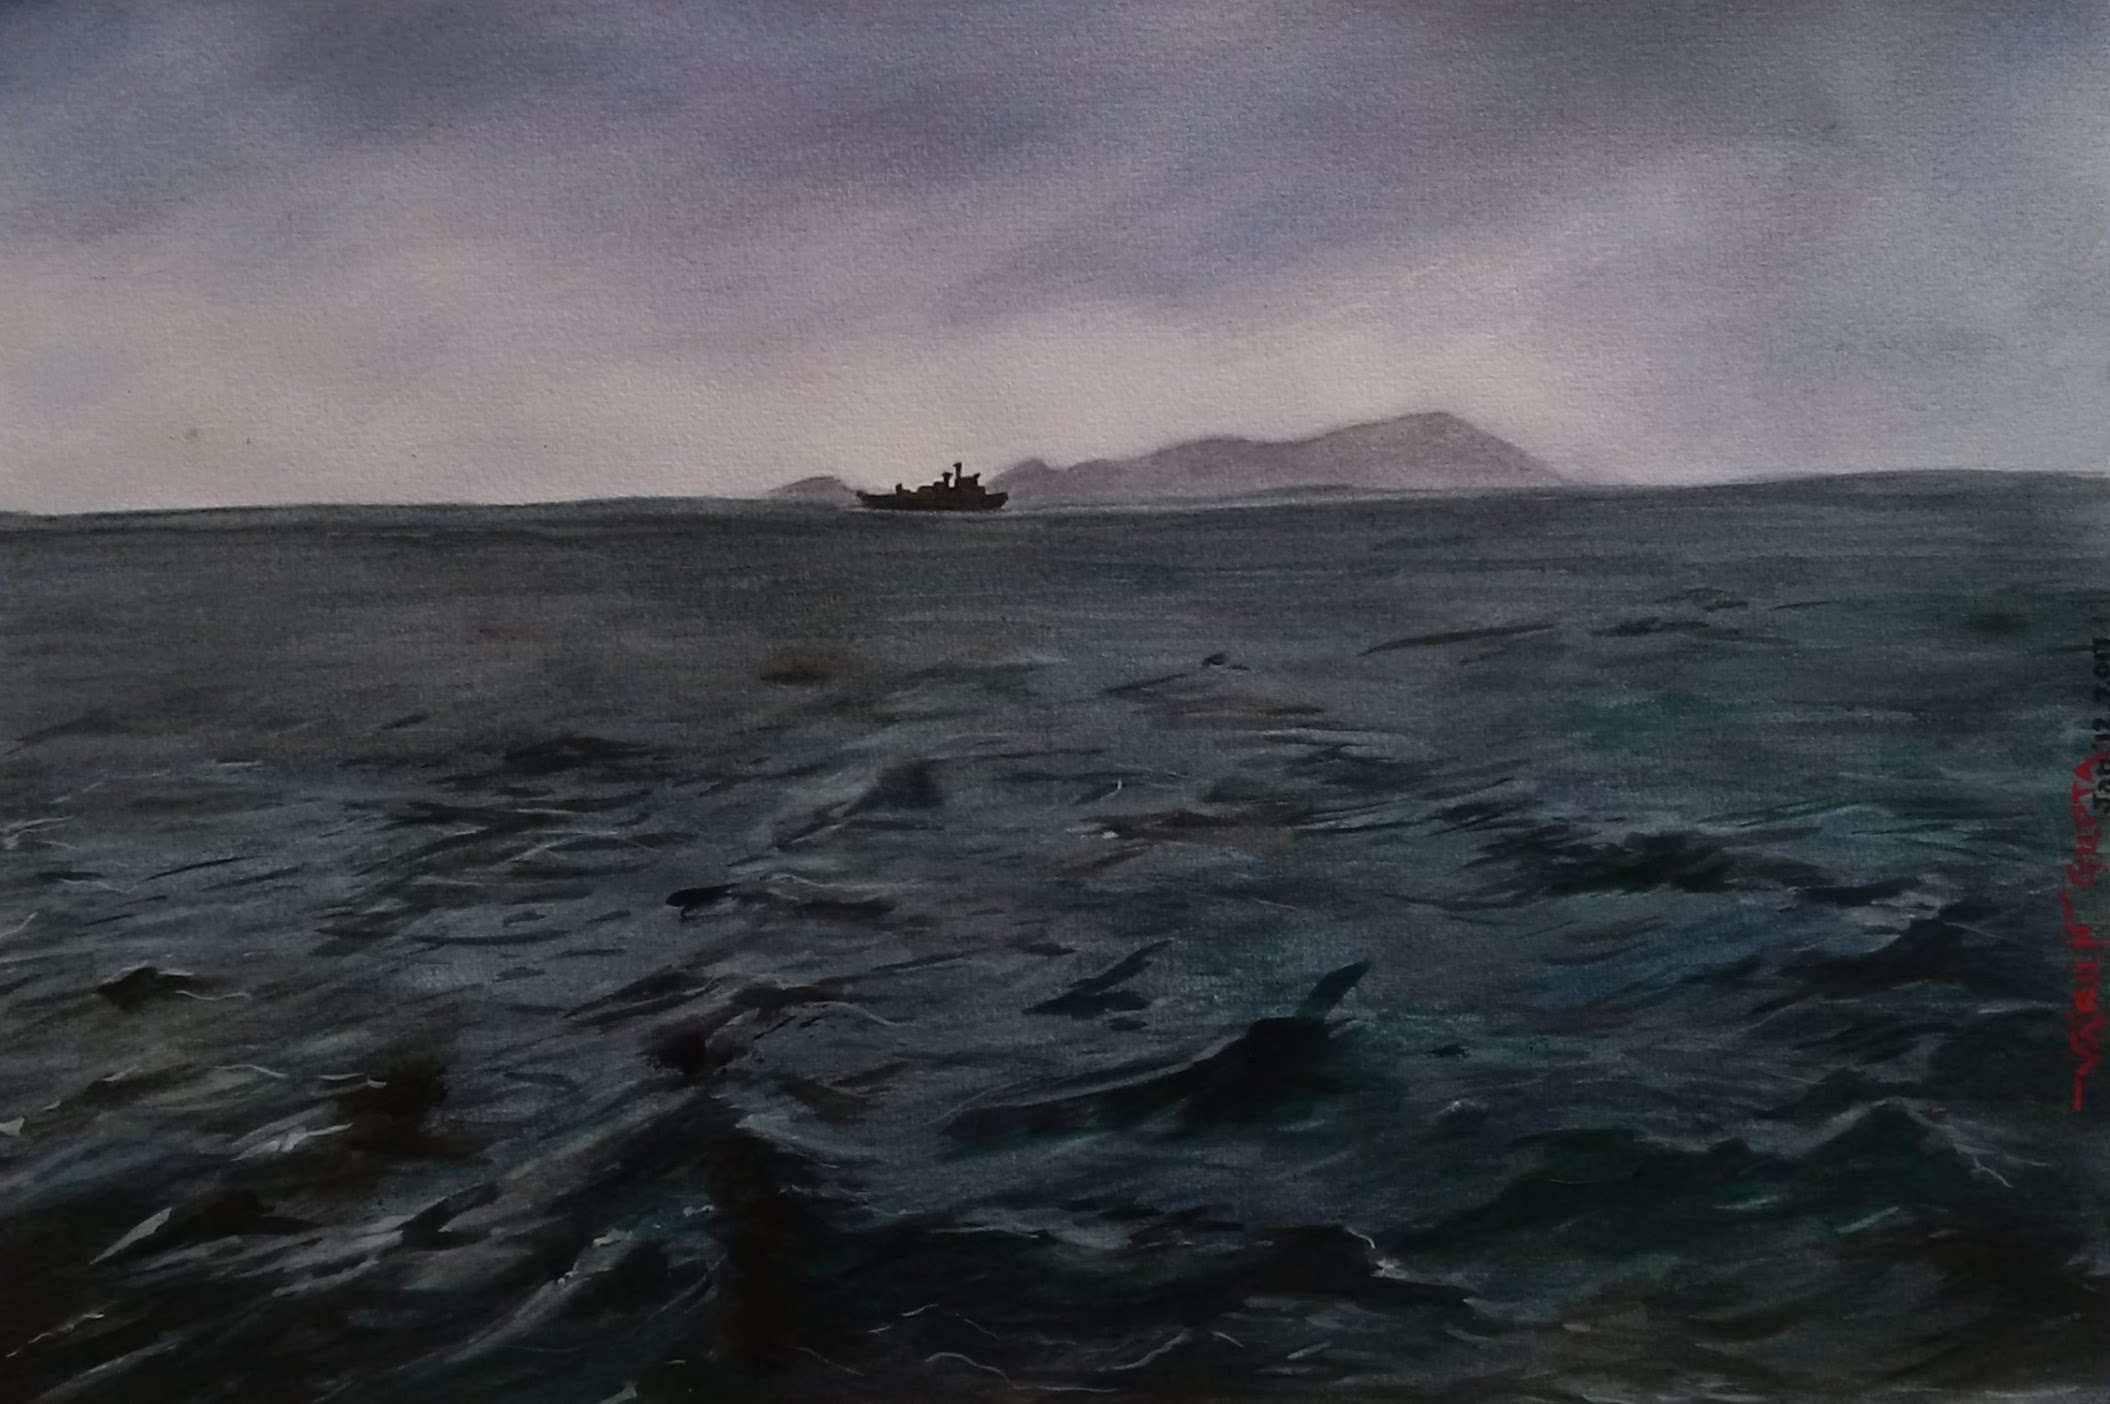 A ship in the storm - Somes Island - Wellington